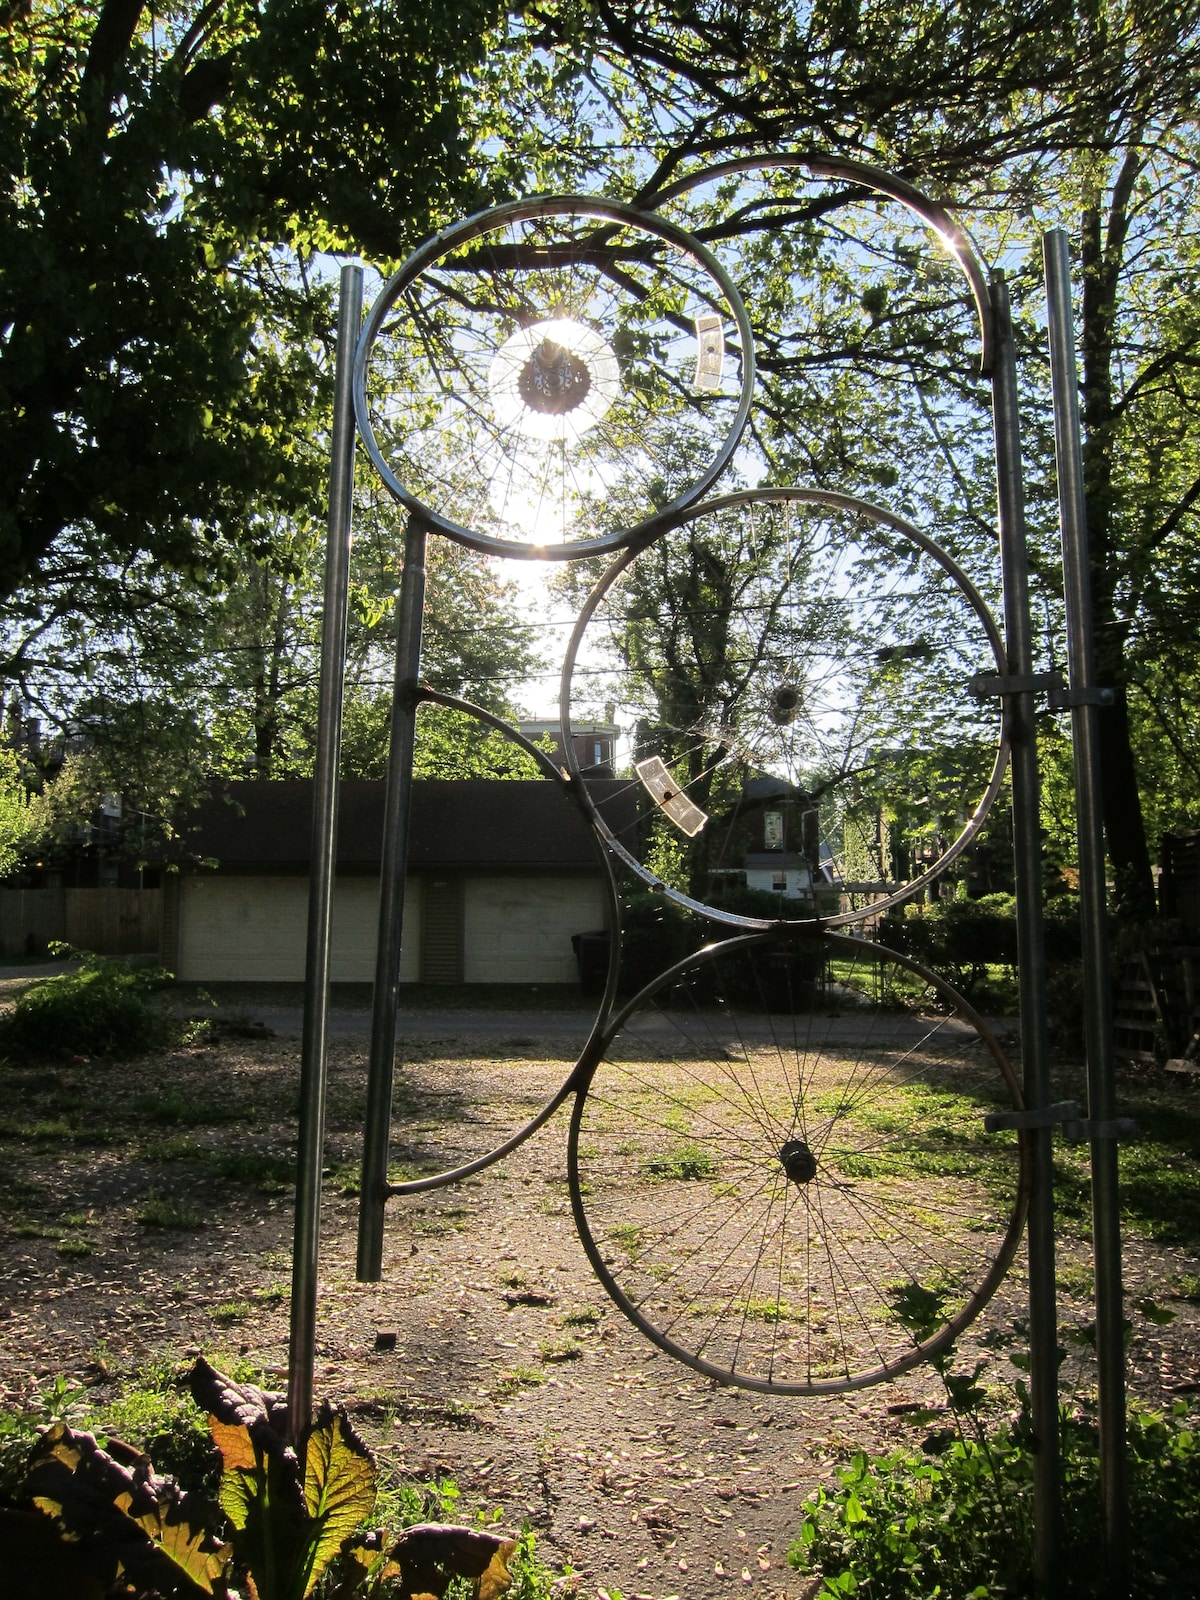 This hand-welded bicycle wheel gate was made by a friend. As you can see, the back parking lot is in need of paving. There is plenty of room for parking, though.